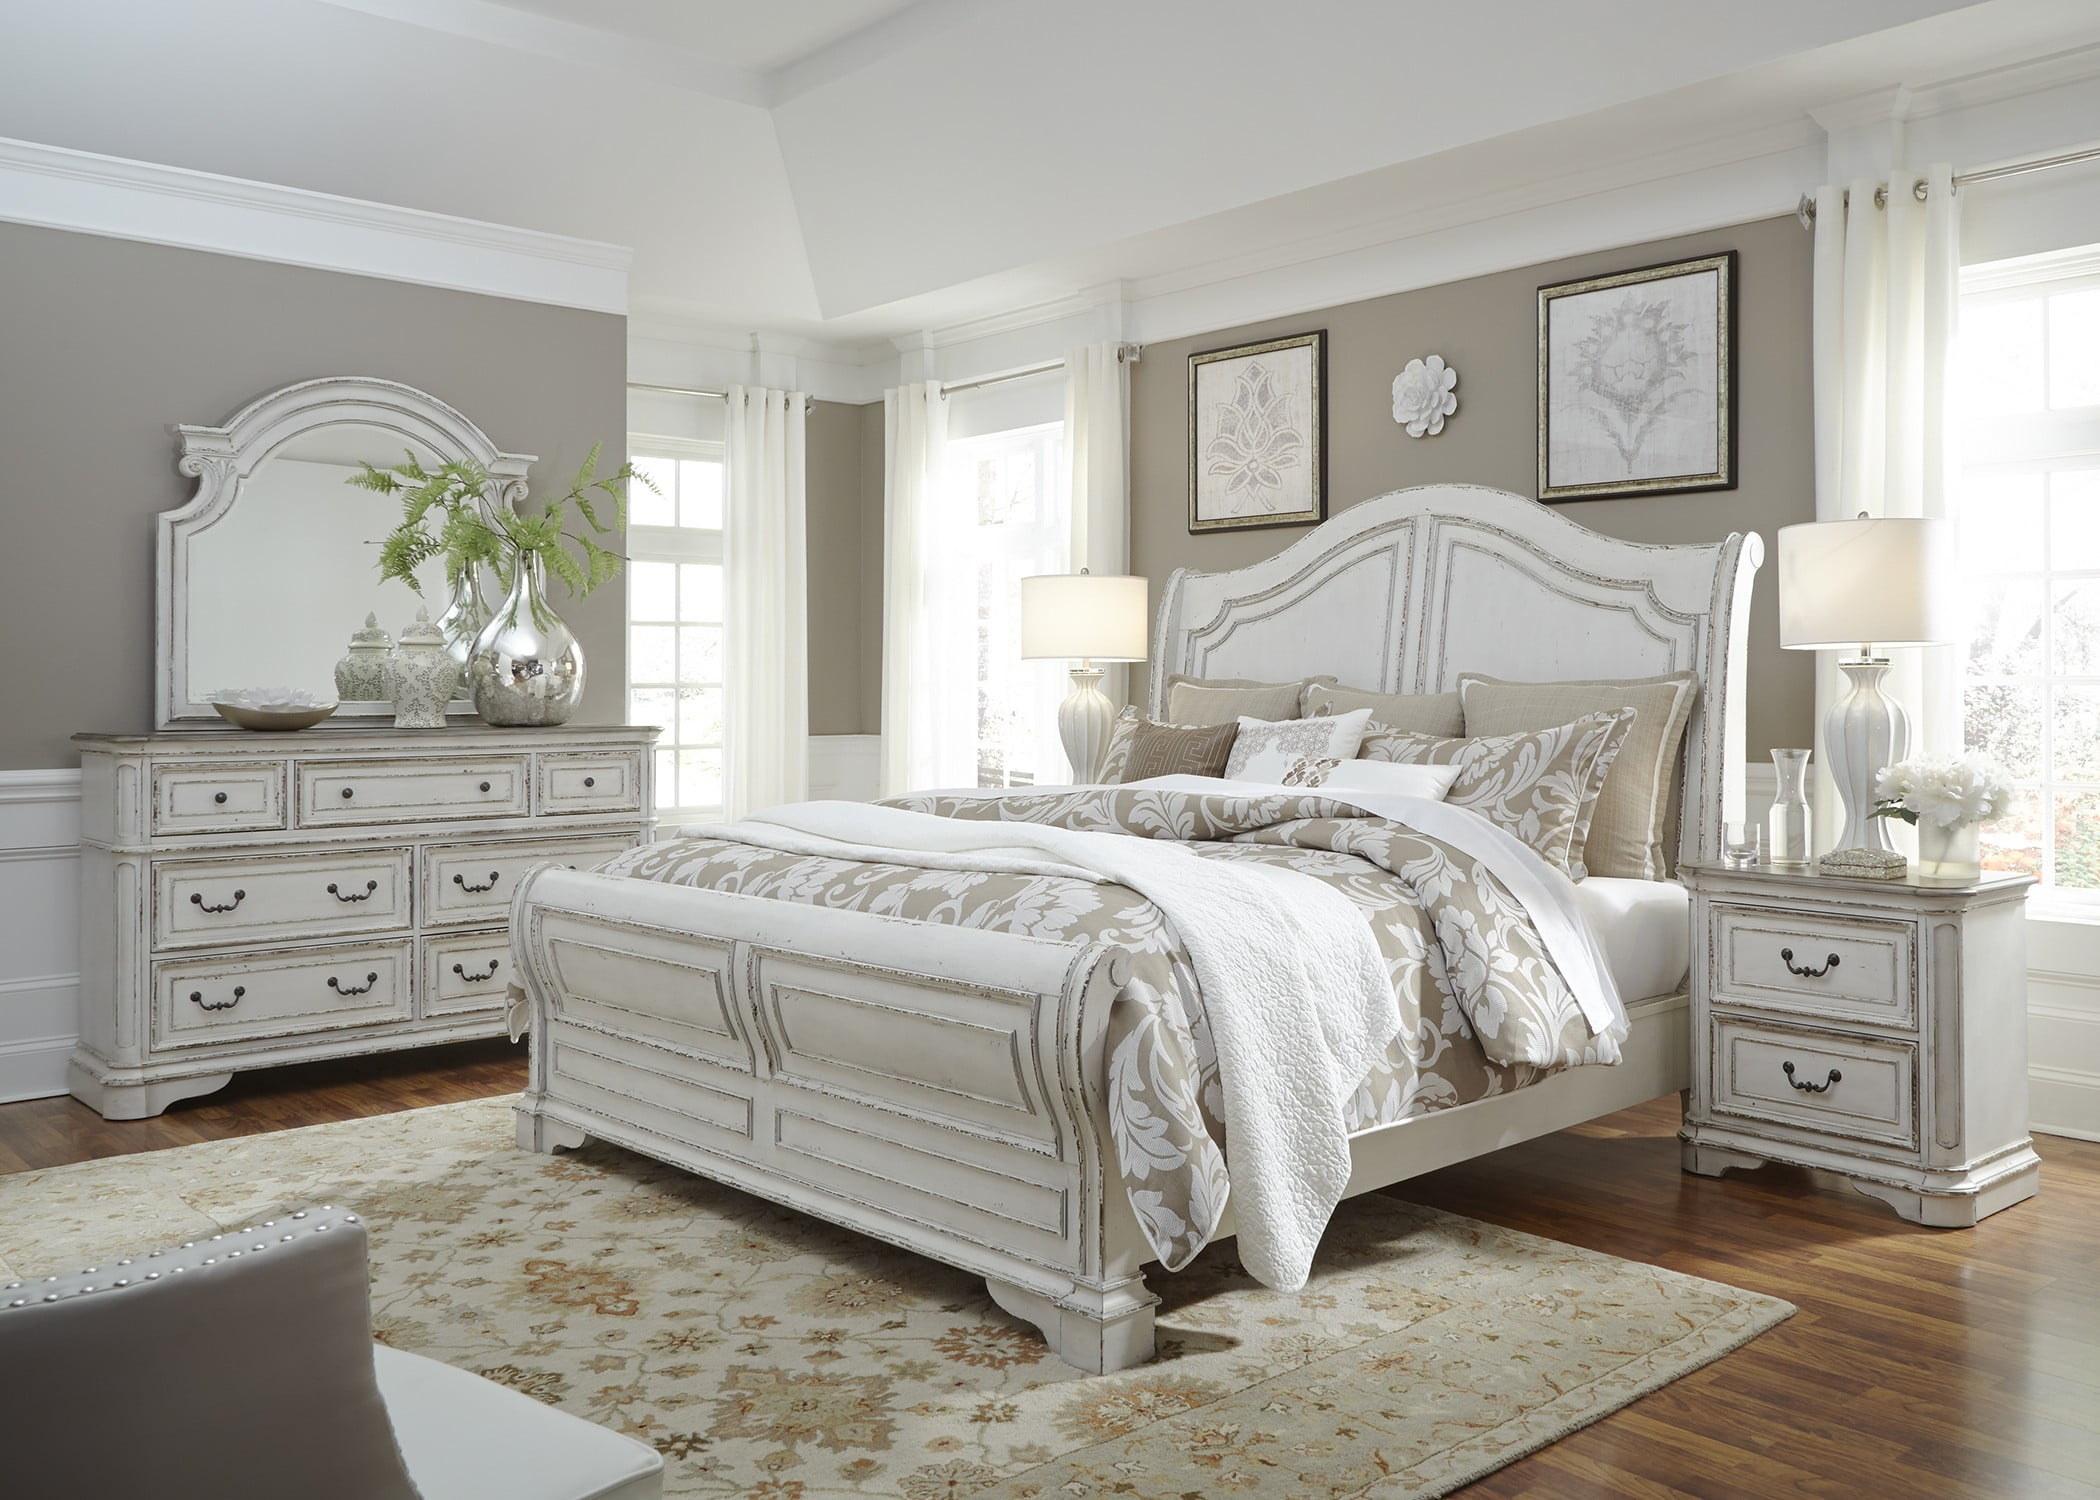 Magnolia manor antique white sleigh bedroom set from - White vintage bedroom furniture sets ...